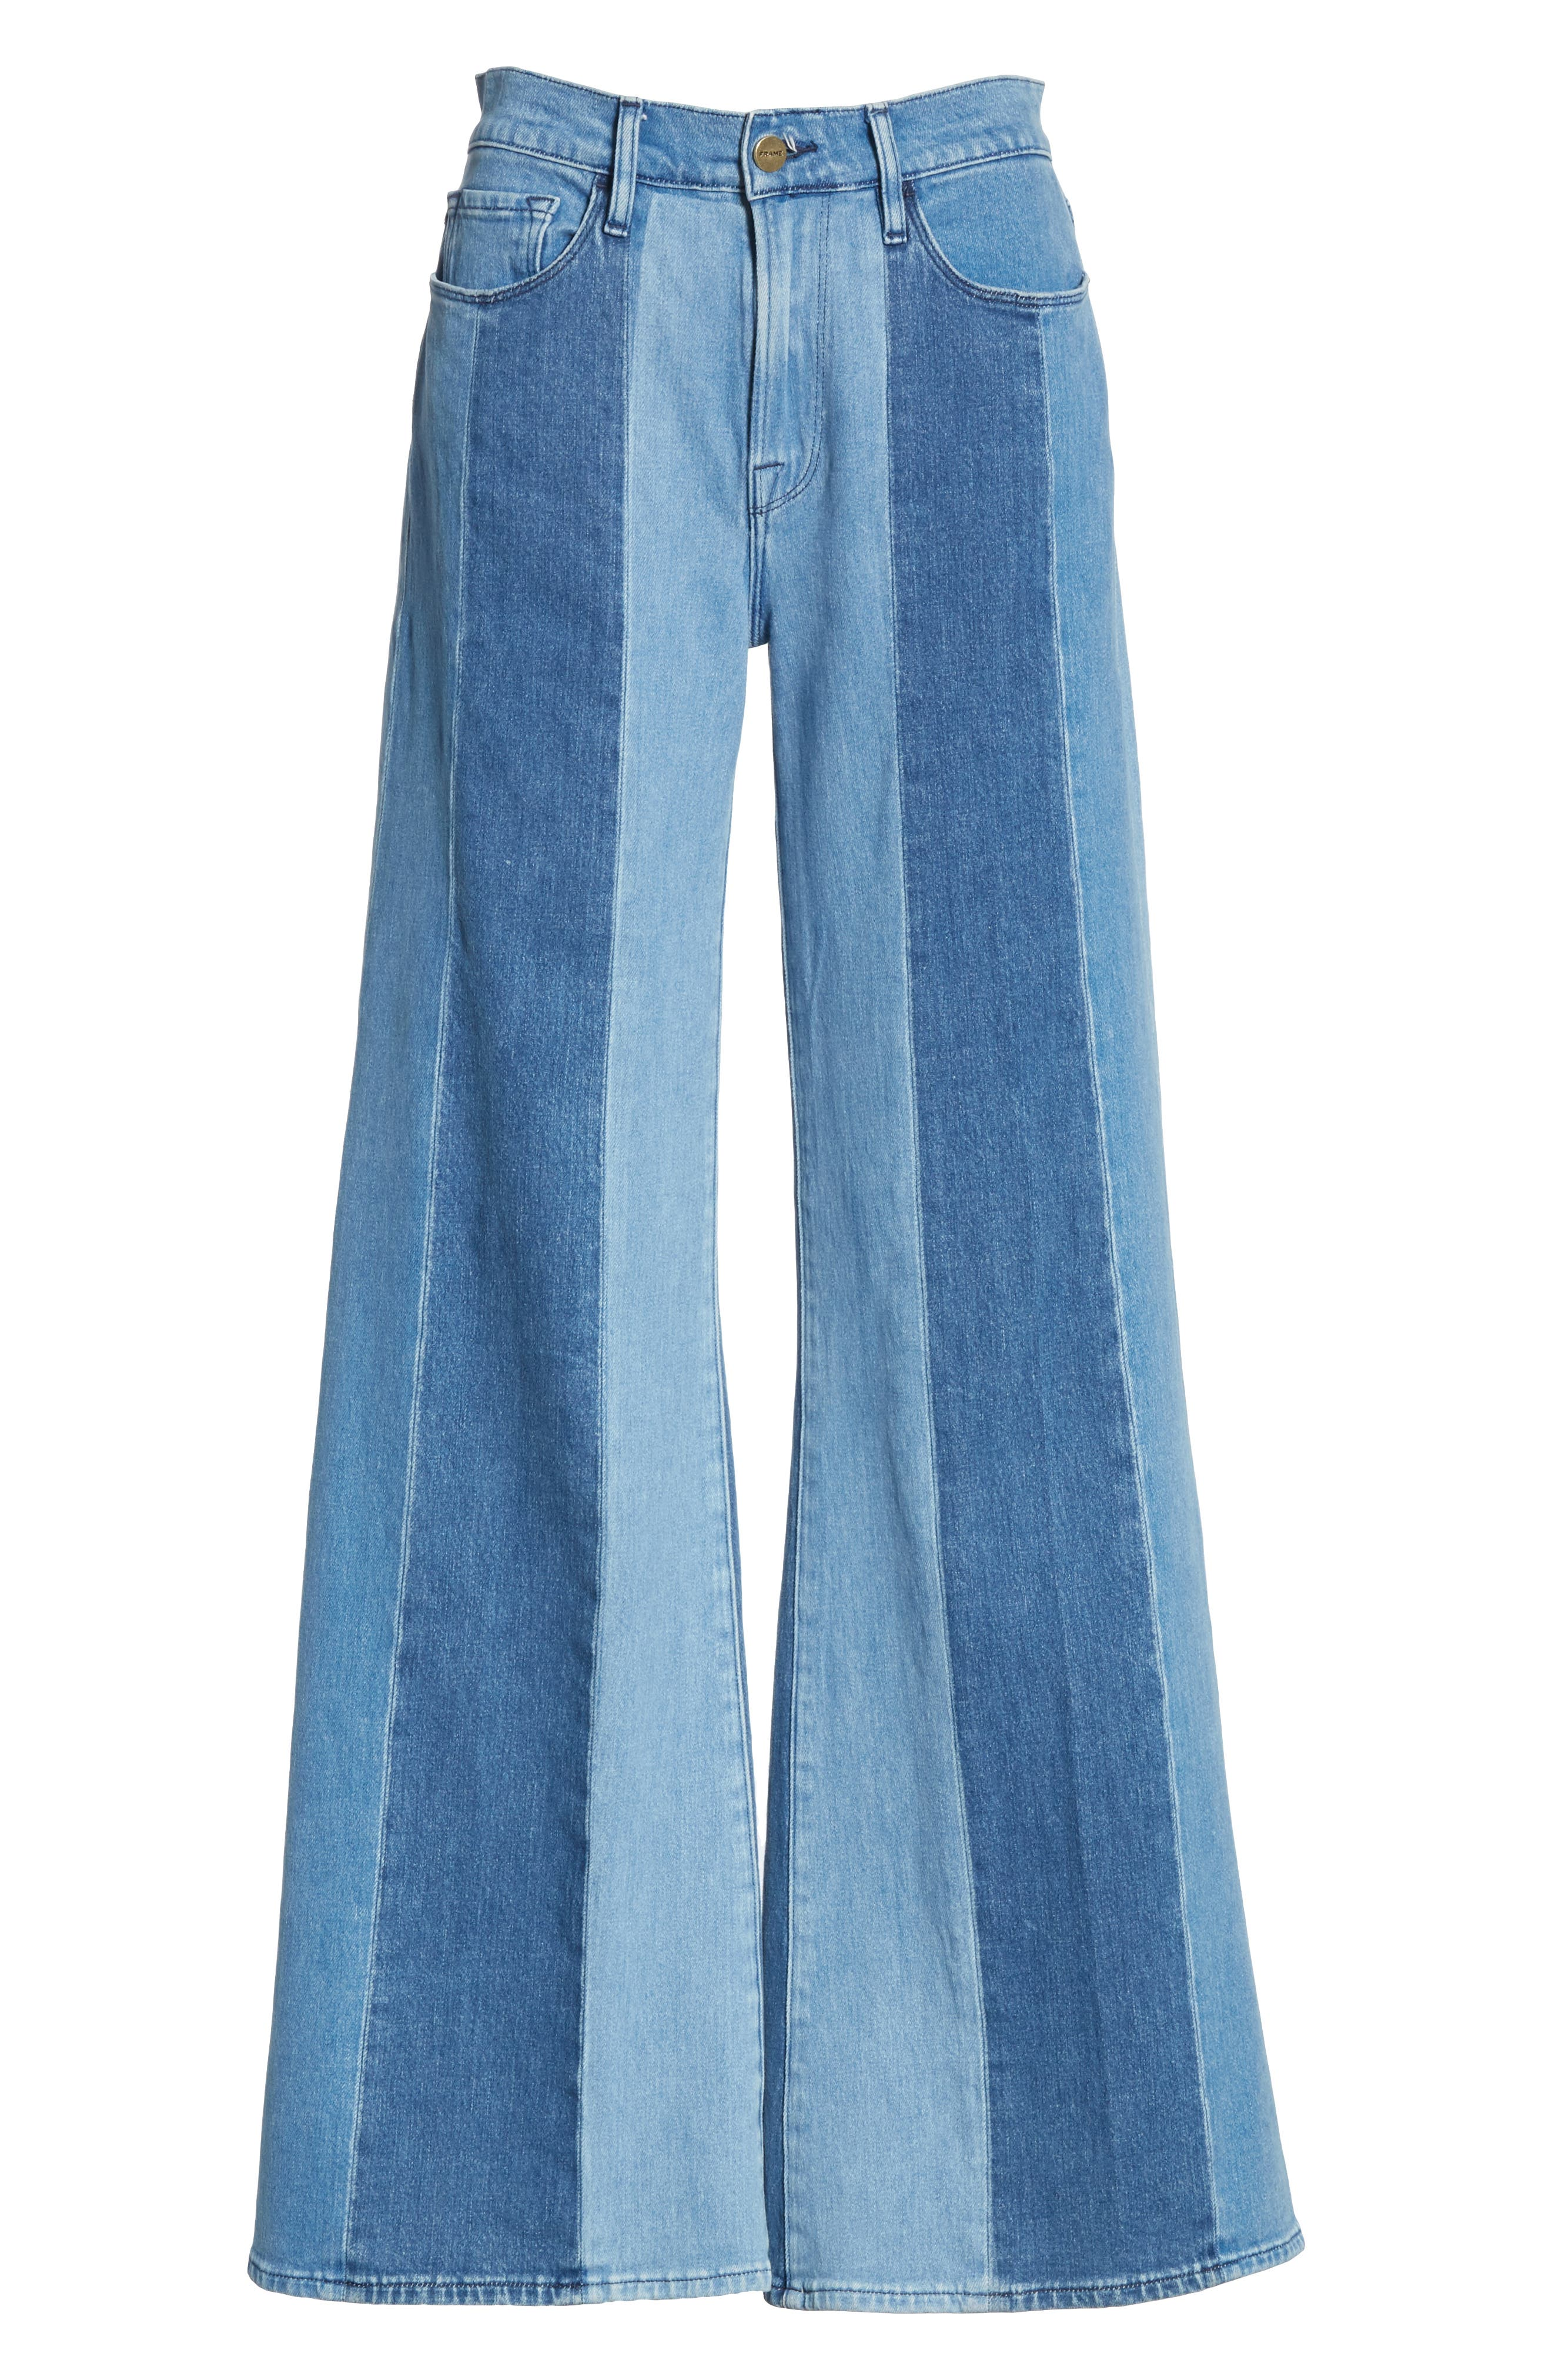 Le Palazzo Paneled Wide Leg Jeans,                             Alternate thumbnail 6, color,                             VINEYARD